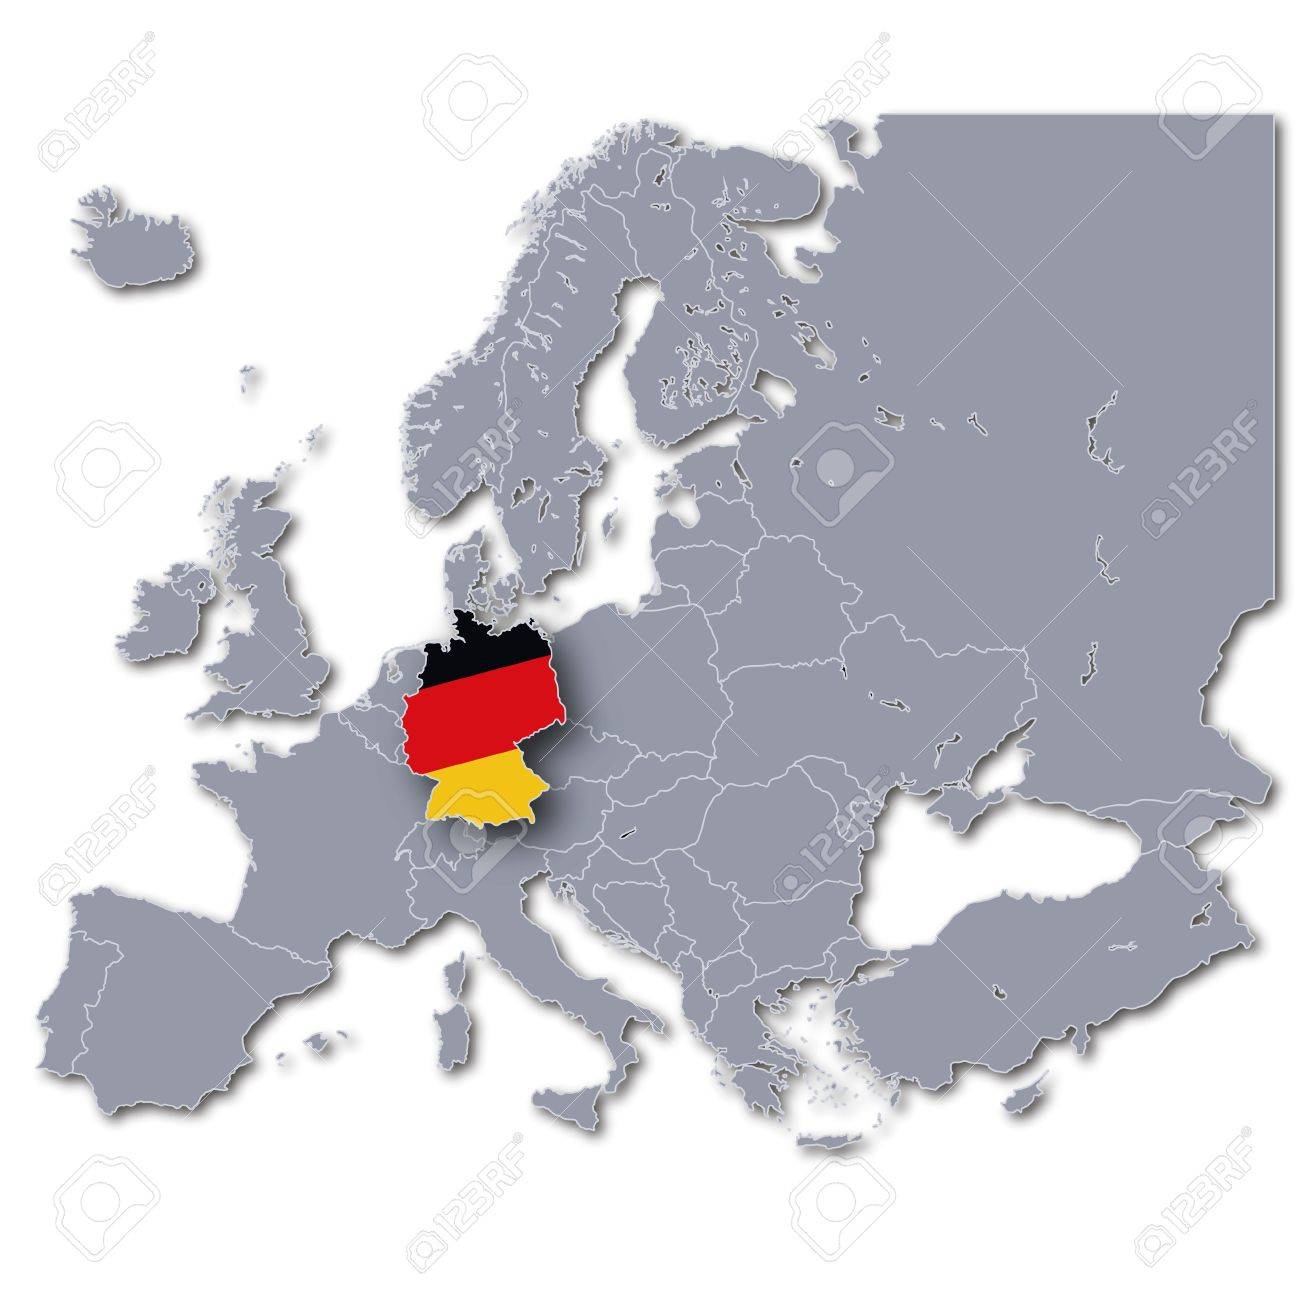 Europe Map Germany Stock Photo Picture And Royalty Free Image